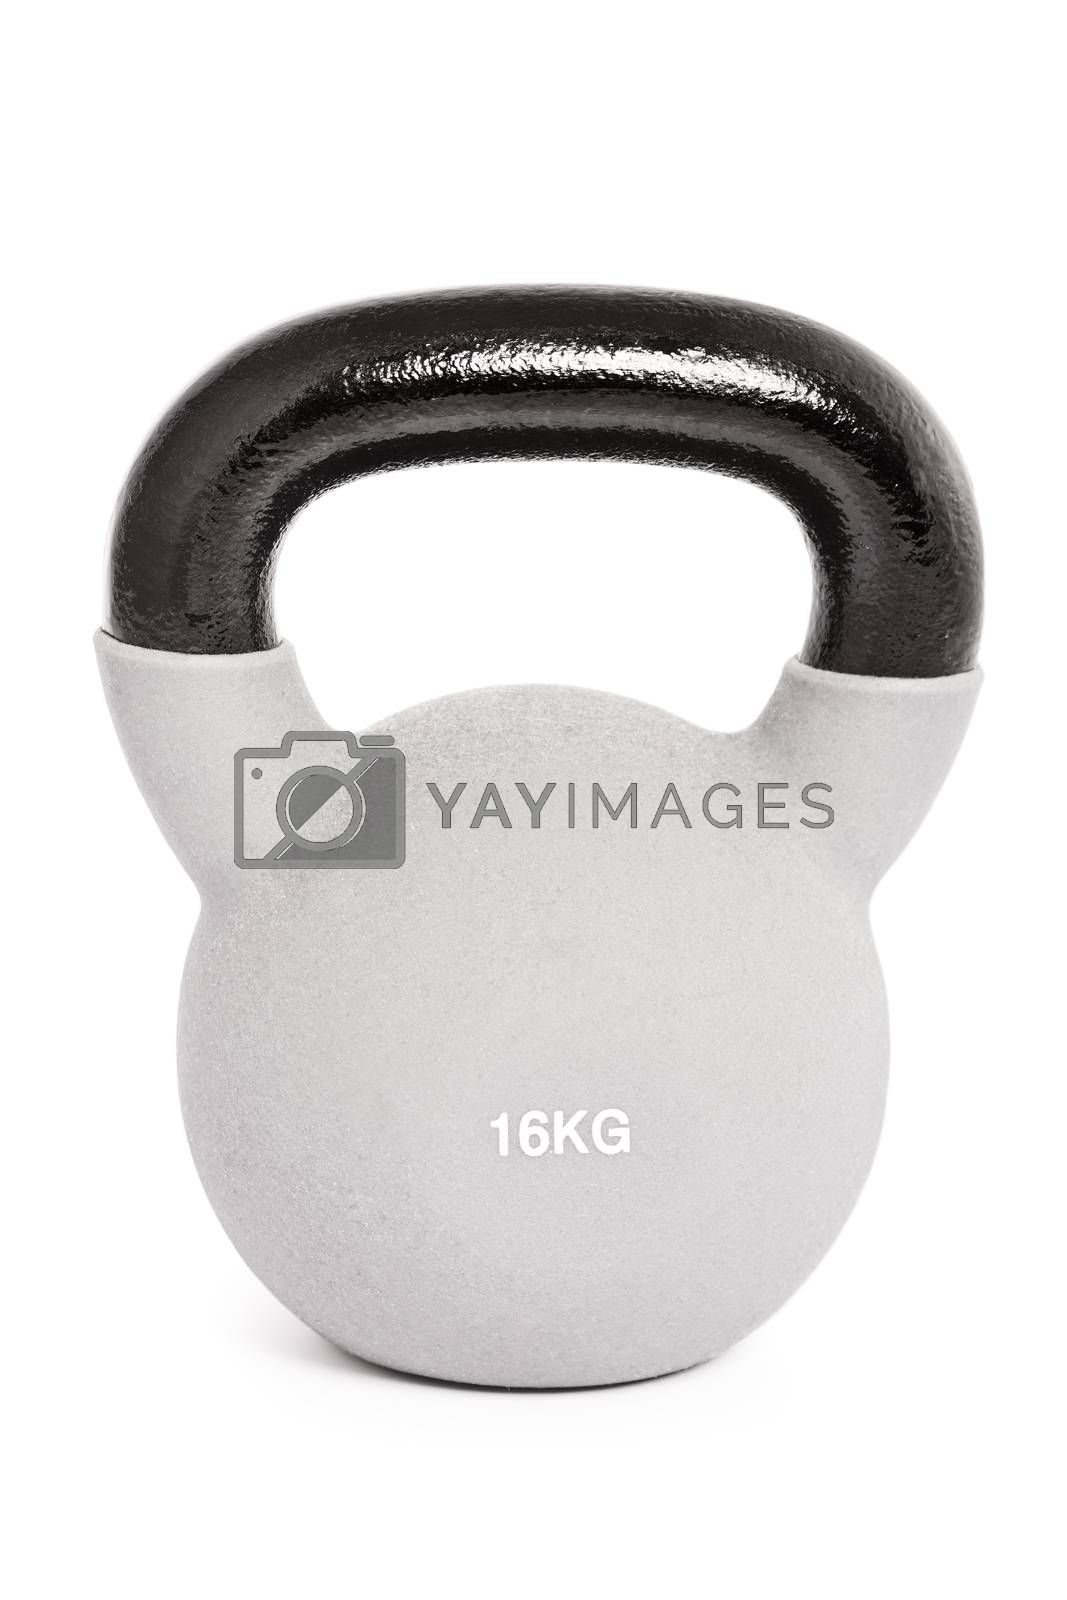 Kettlebell isolated on a white background.